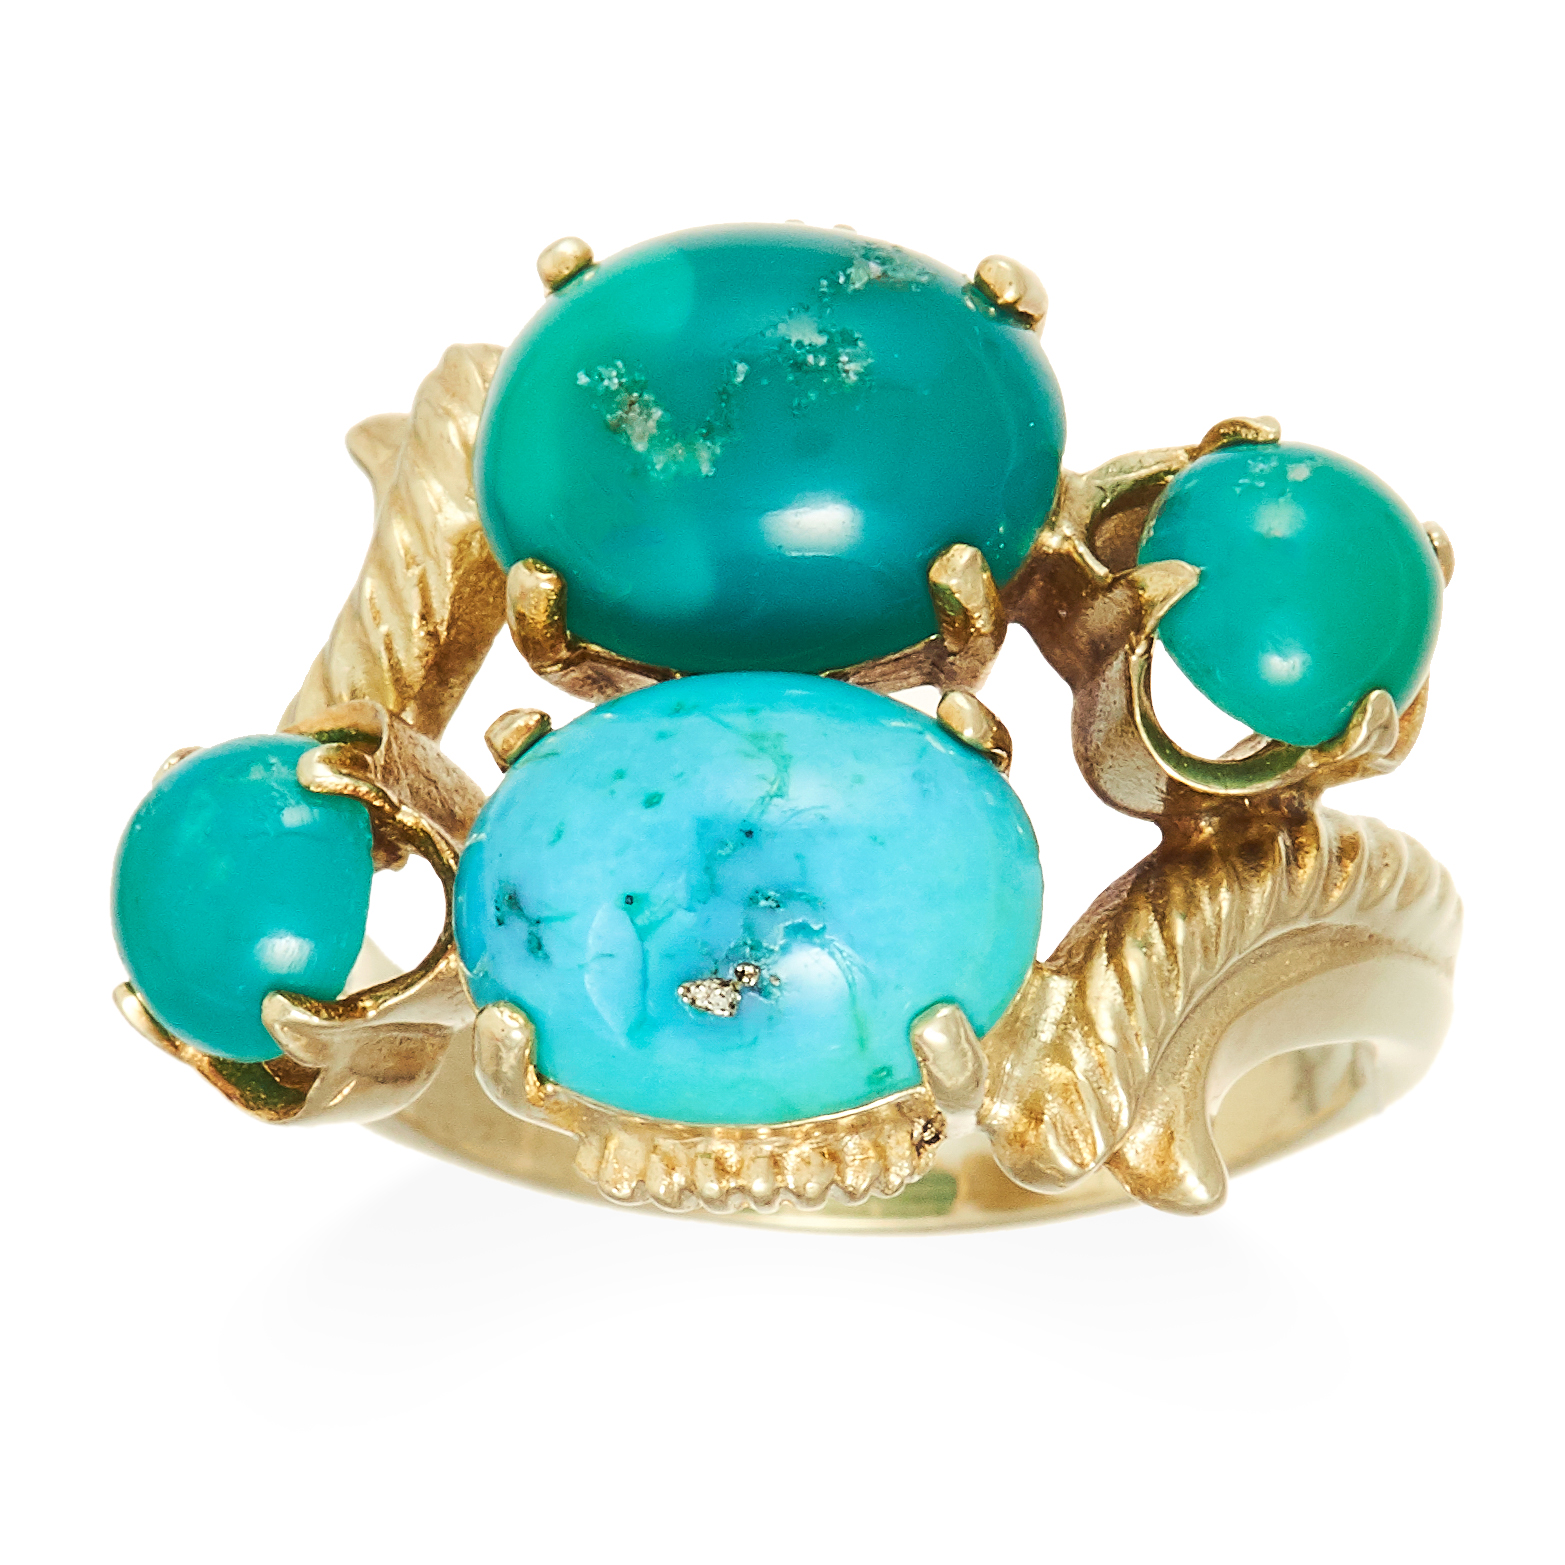 A TURQUOISE DRESS RING in high carat yellow gold, set with four turquoise cabochons between